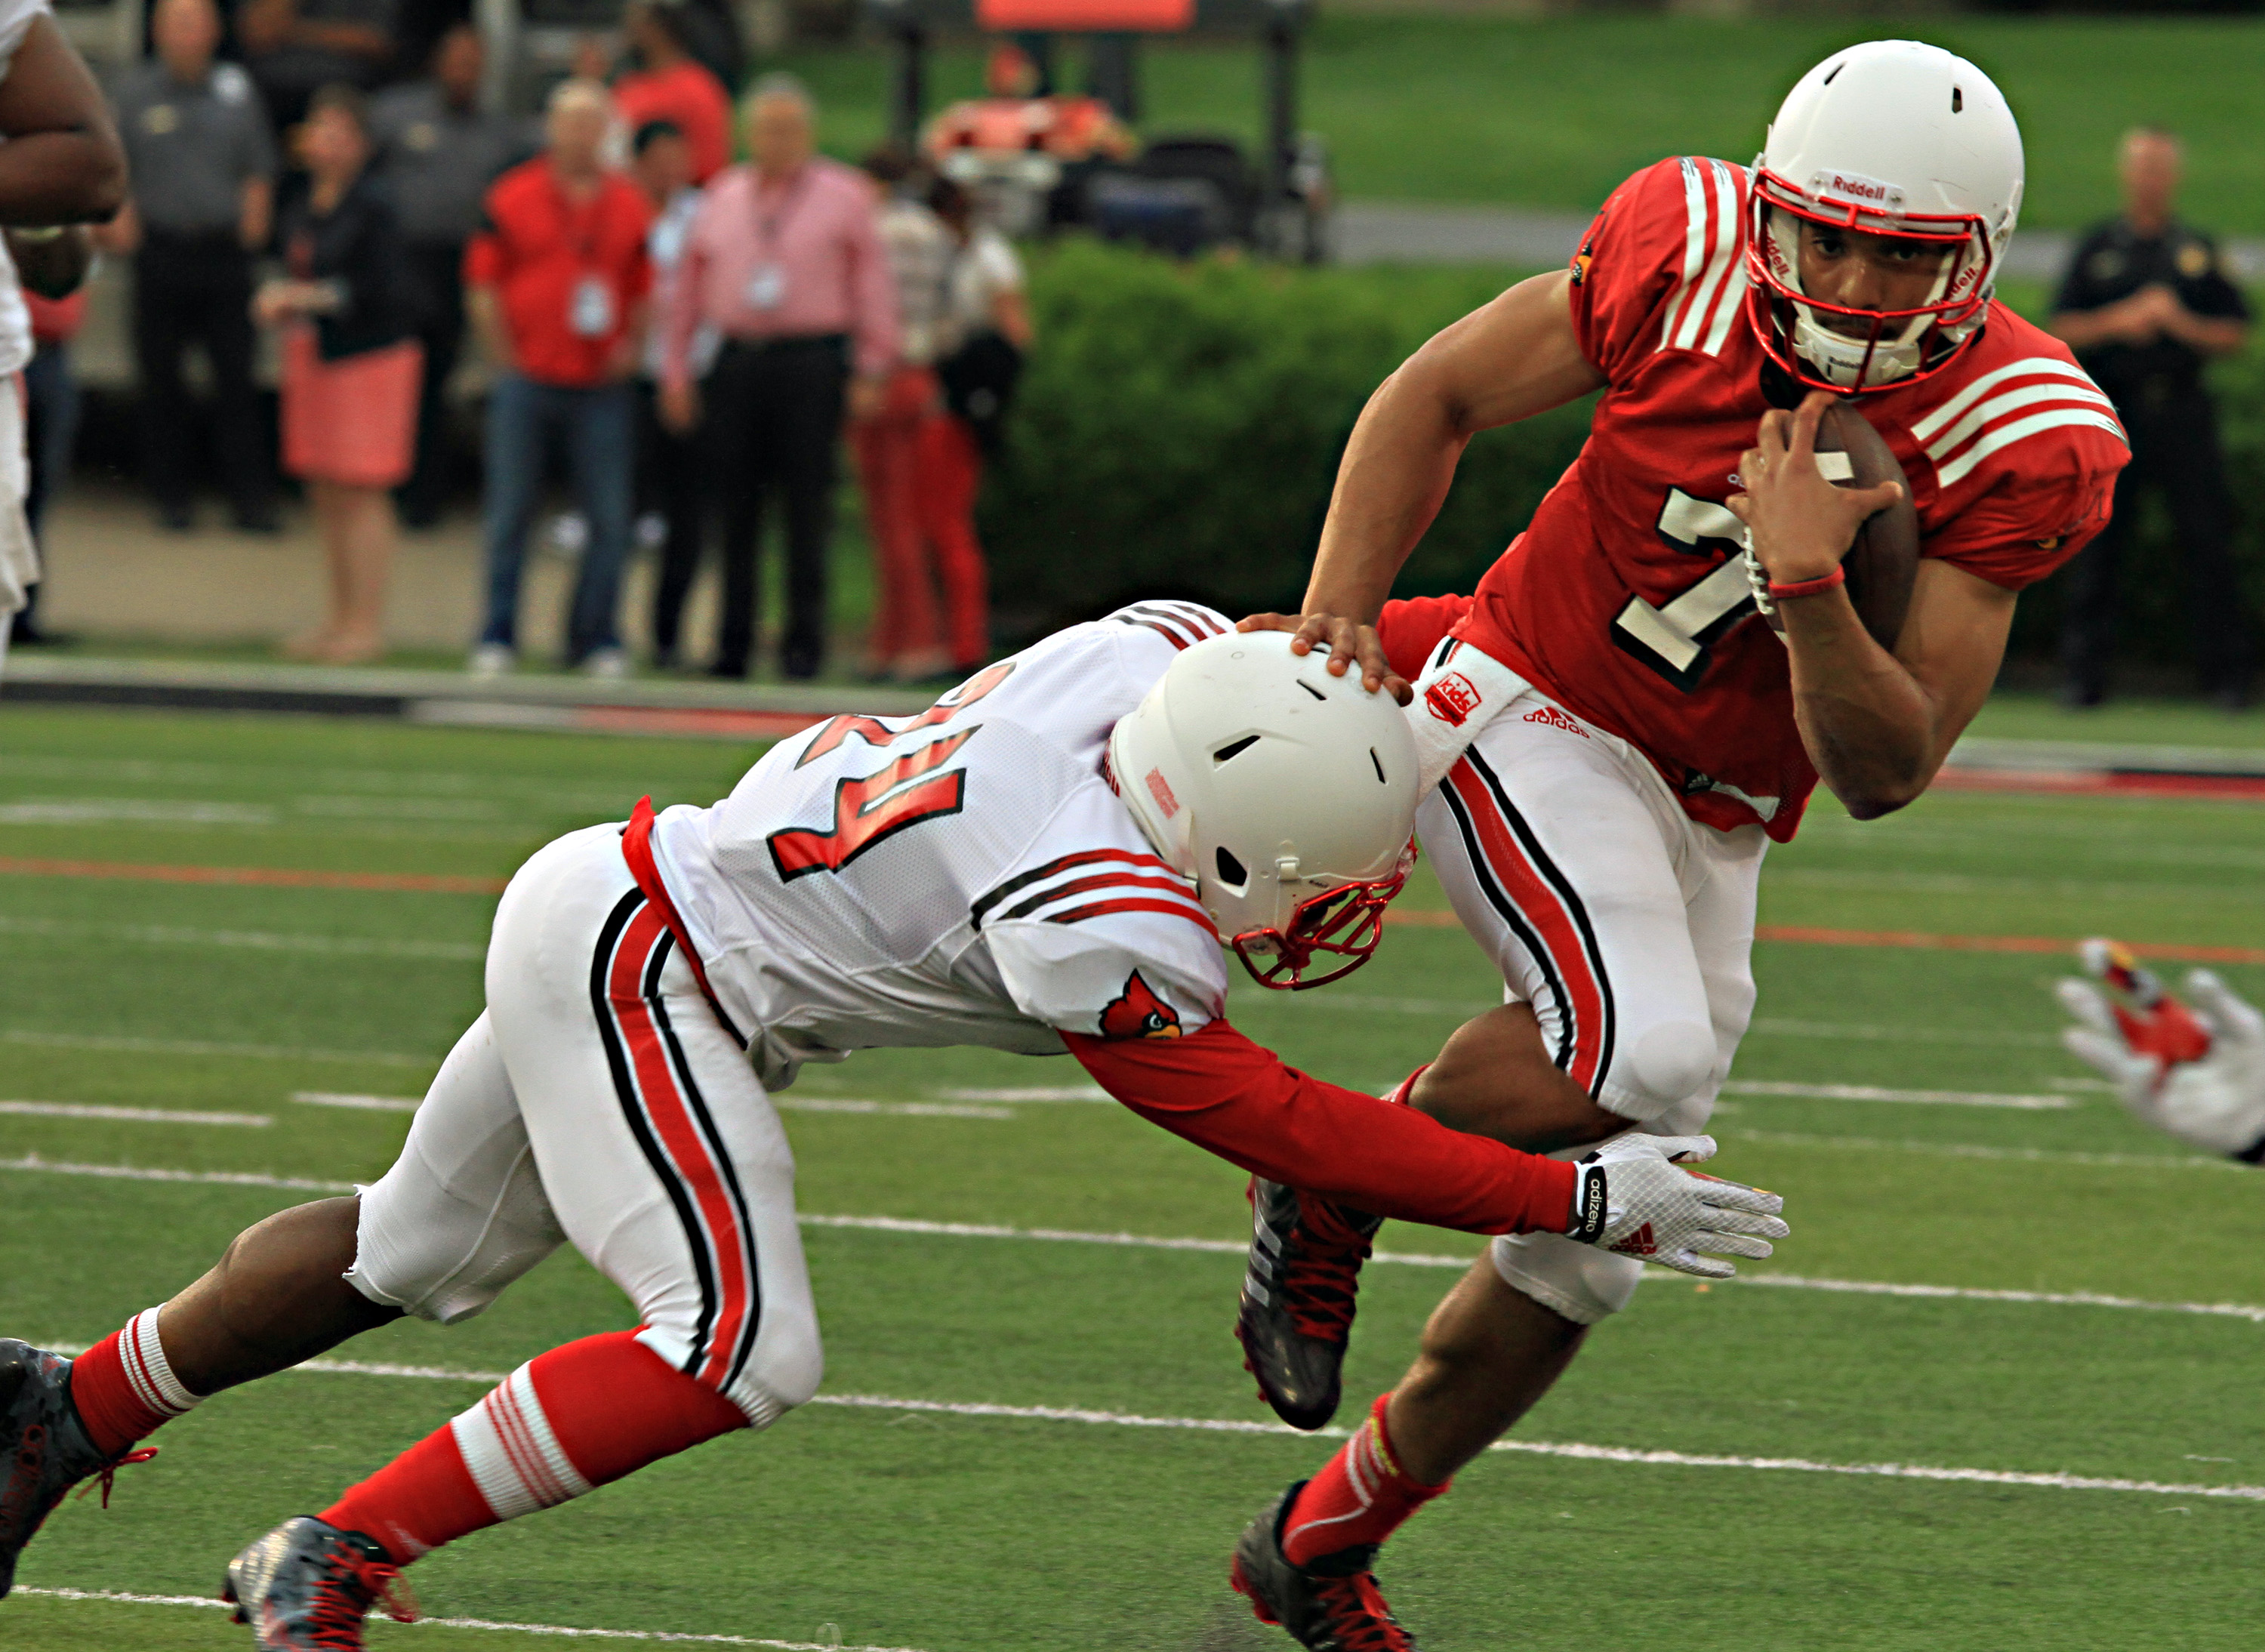 Louisville quarterback Reggi Bonnafon (7) runs through the tackle attempt by safety Zykiesis Cannon (24) in the annual spring football scrimmage game at Cardinal Stadium in Louisville, Ky., Friday, April 17, 2015.  (AP Photo/Garry Jones)